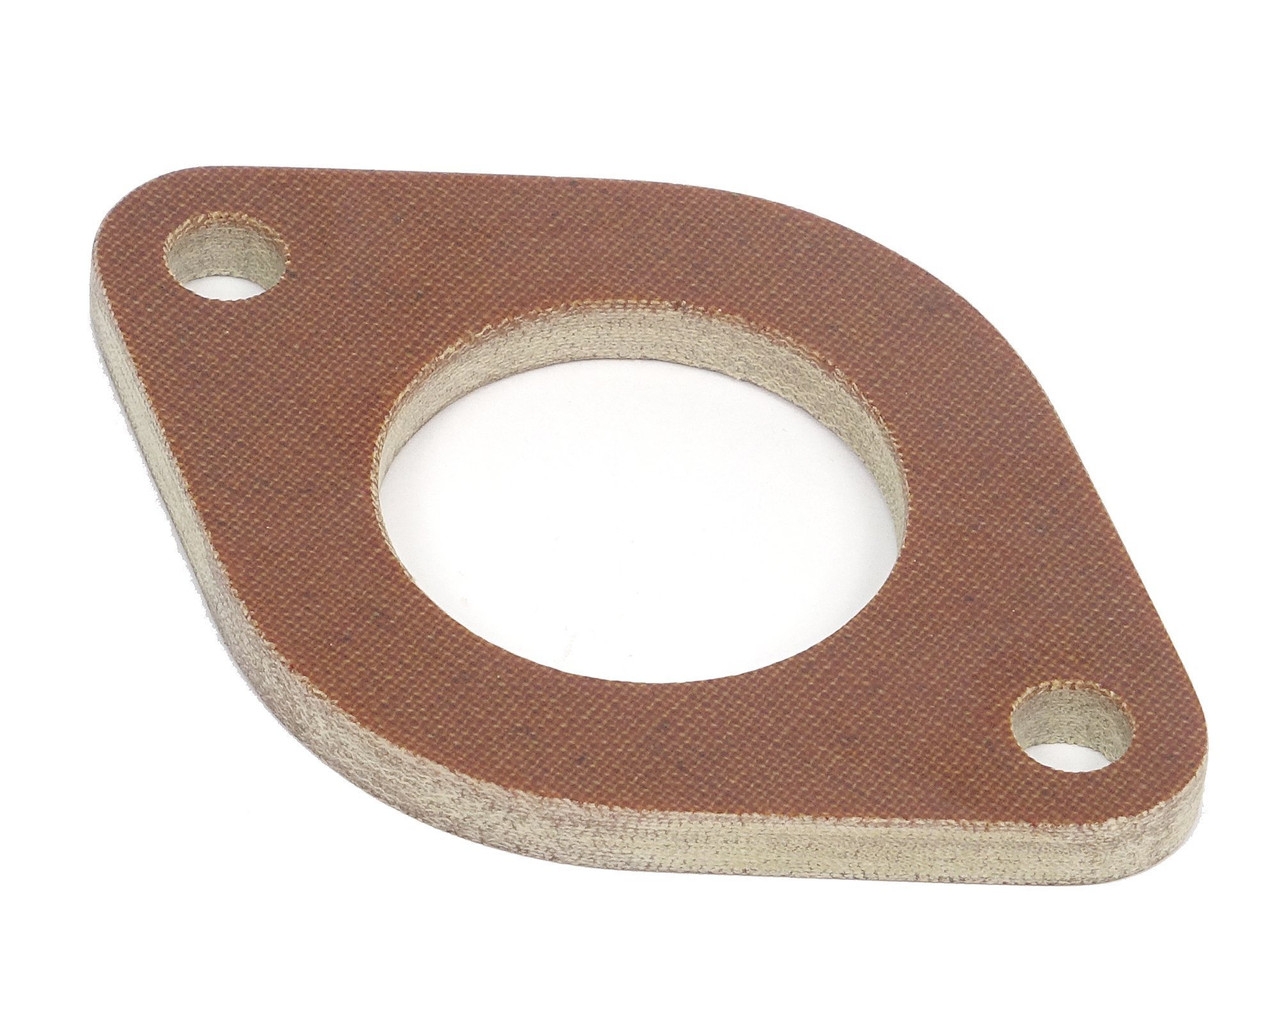 Weber 40 IDF Insulator Spacer